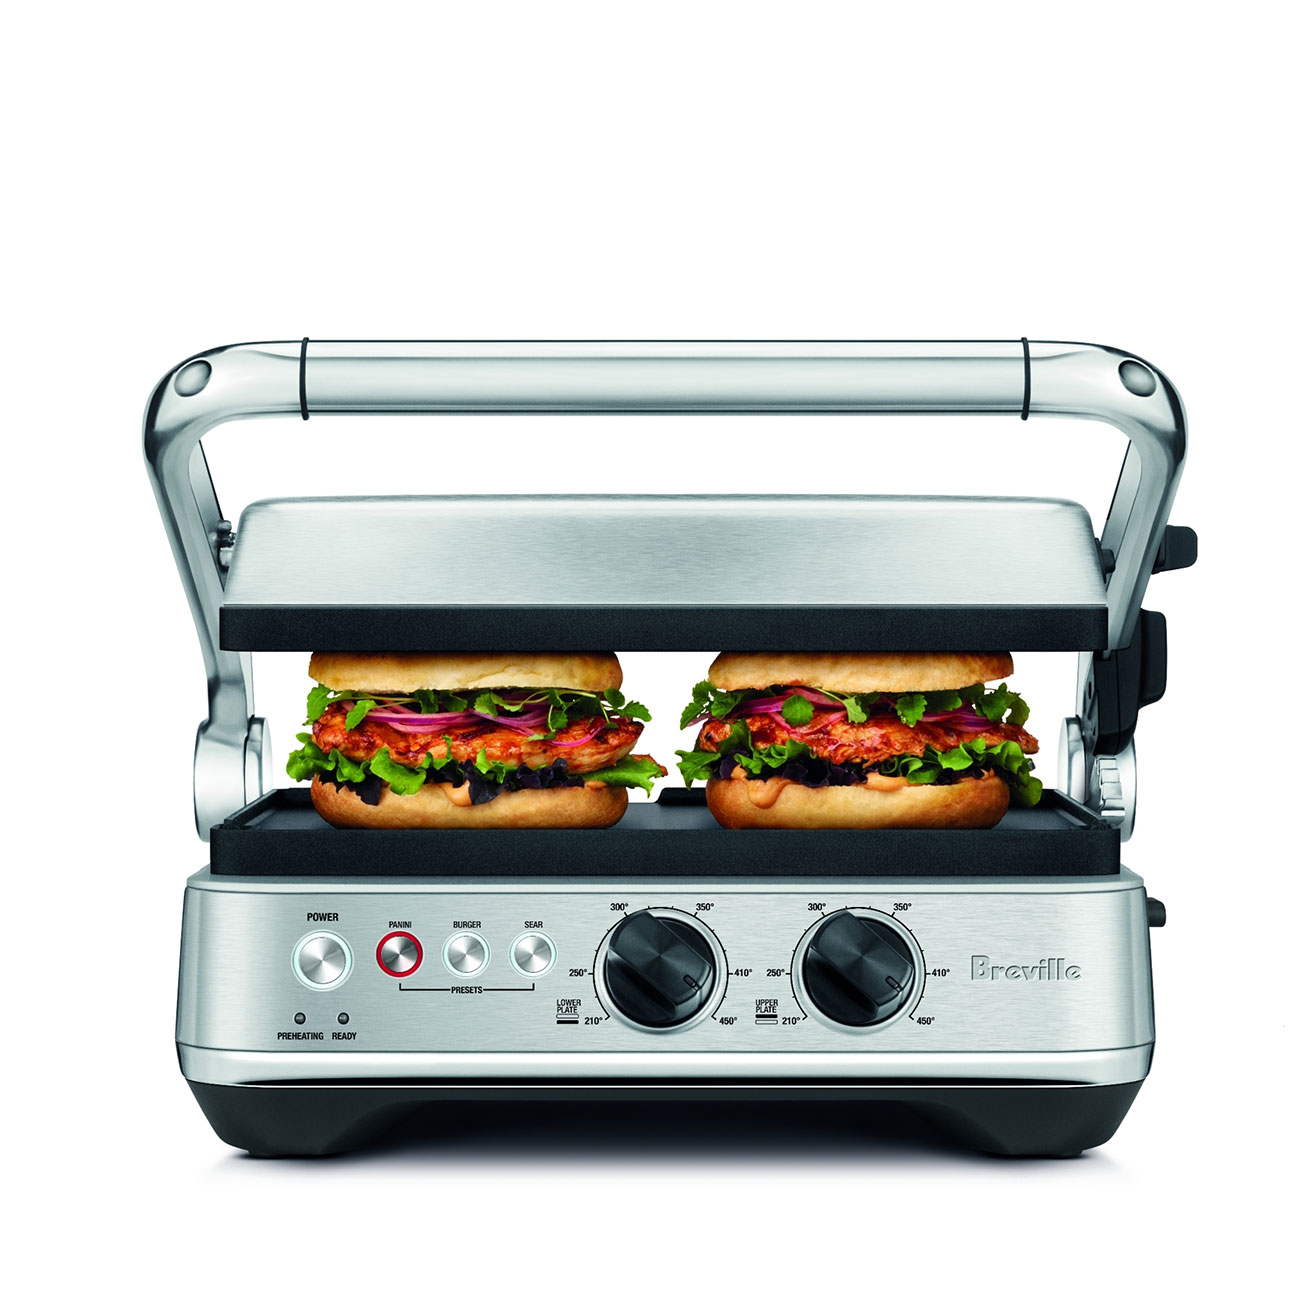 The Sear Press Grill Sandwich Maker Breville